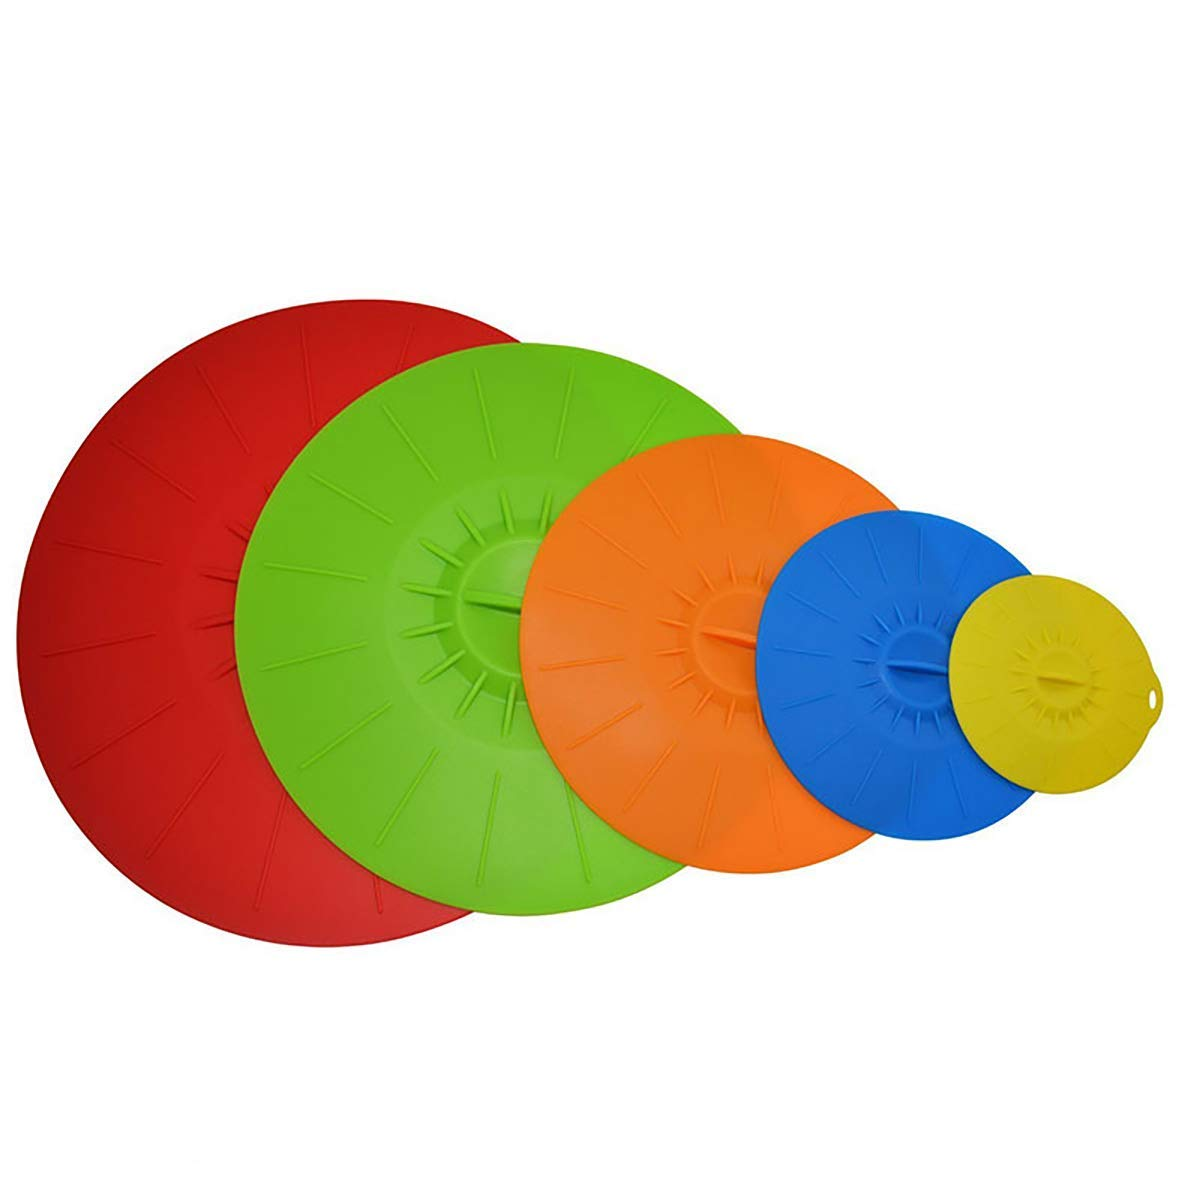 Convallaria 5 Pack Silicone Suction Lids Various Size Reusable Pad Food Containers, Pots, Pans, Salad Bowl Covers (5 Colors)